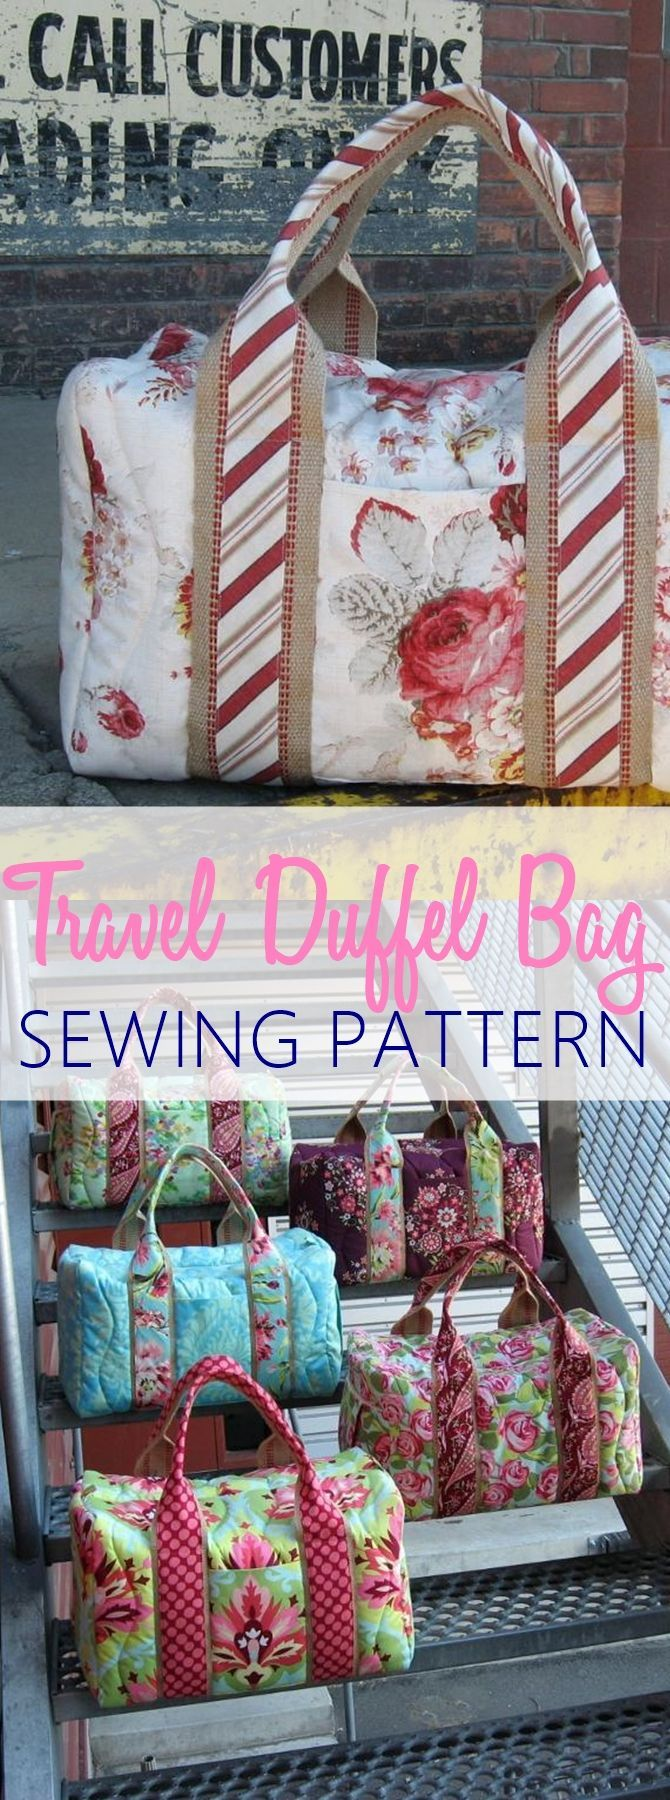 Travel duffel bag sewing pattern. PERFECT for weekends and night overs. GET THE PATTERN & 2924 best Sewing images on Pinterest | Babies clothes Baby ... pillowsntoast.com